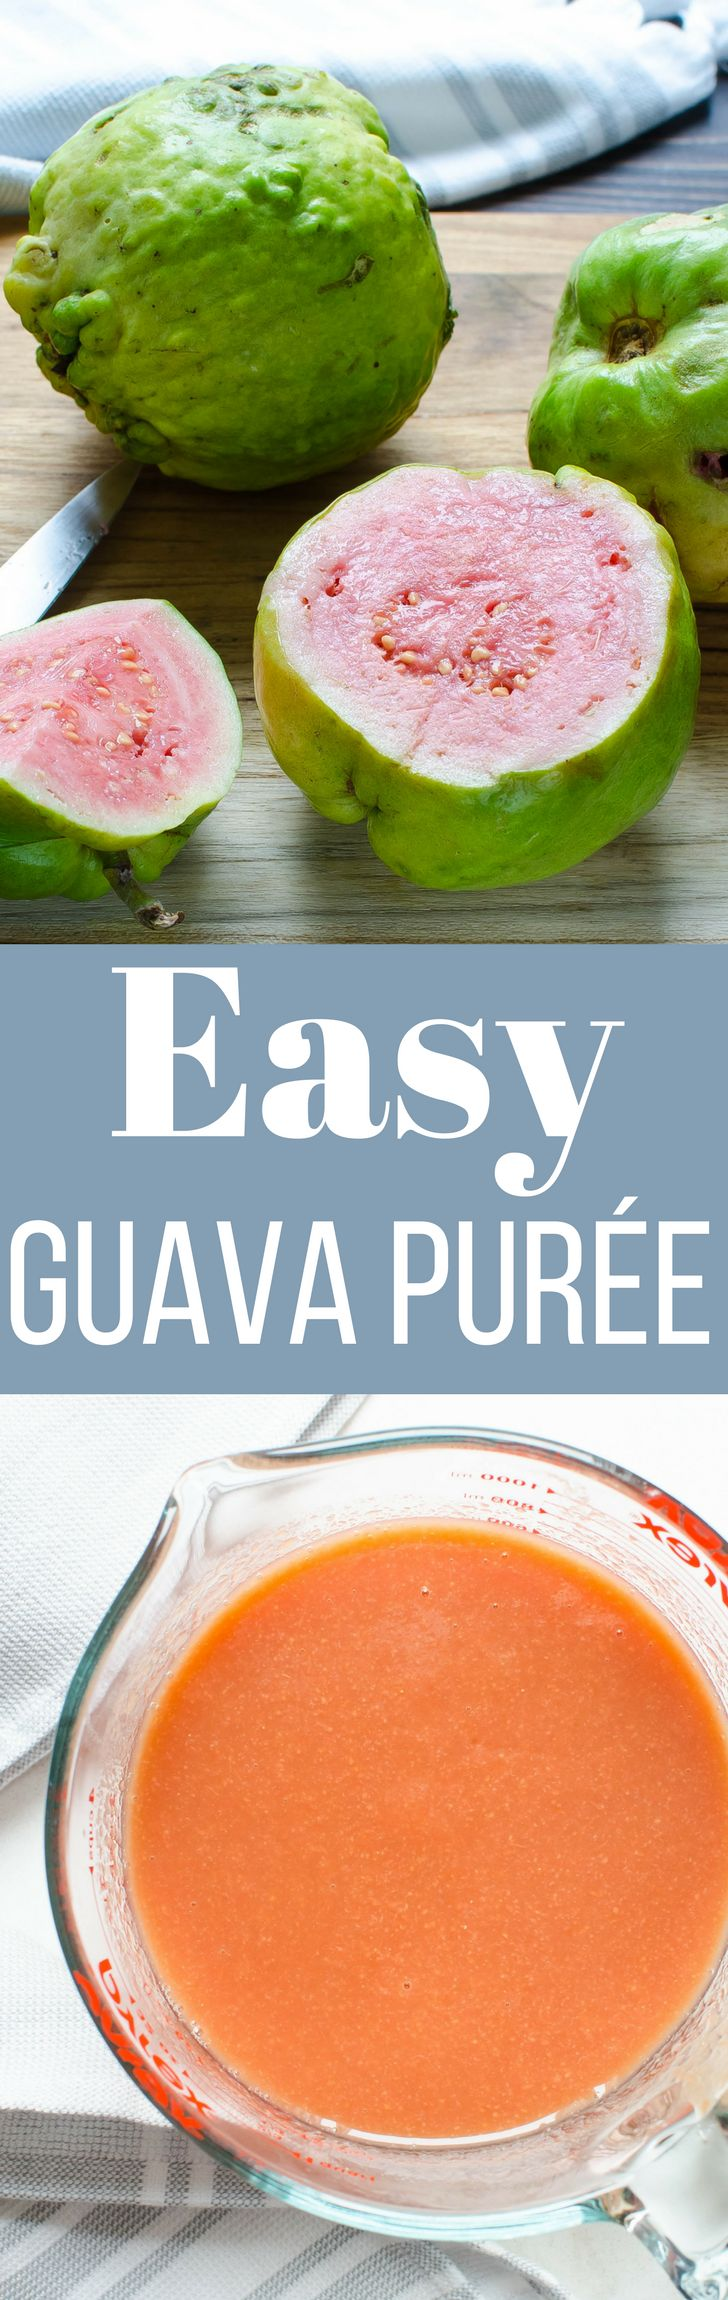 Need a recipe for Easy Guava Purée? Look no further! This smooth, luscious tropical puree is ideal in yogurt, blended in smoothies & shaken in cocktails!